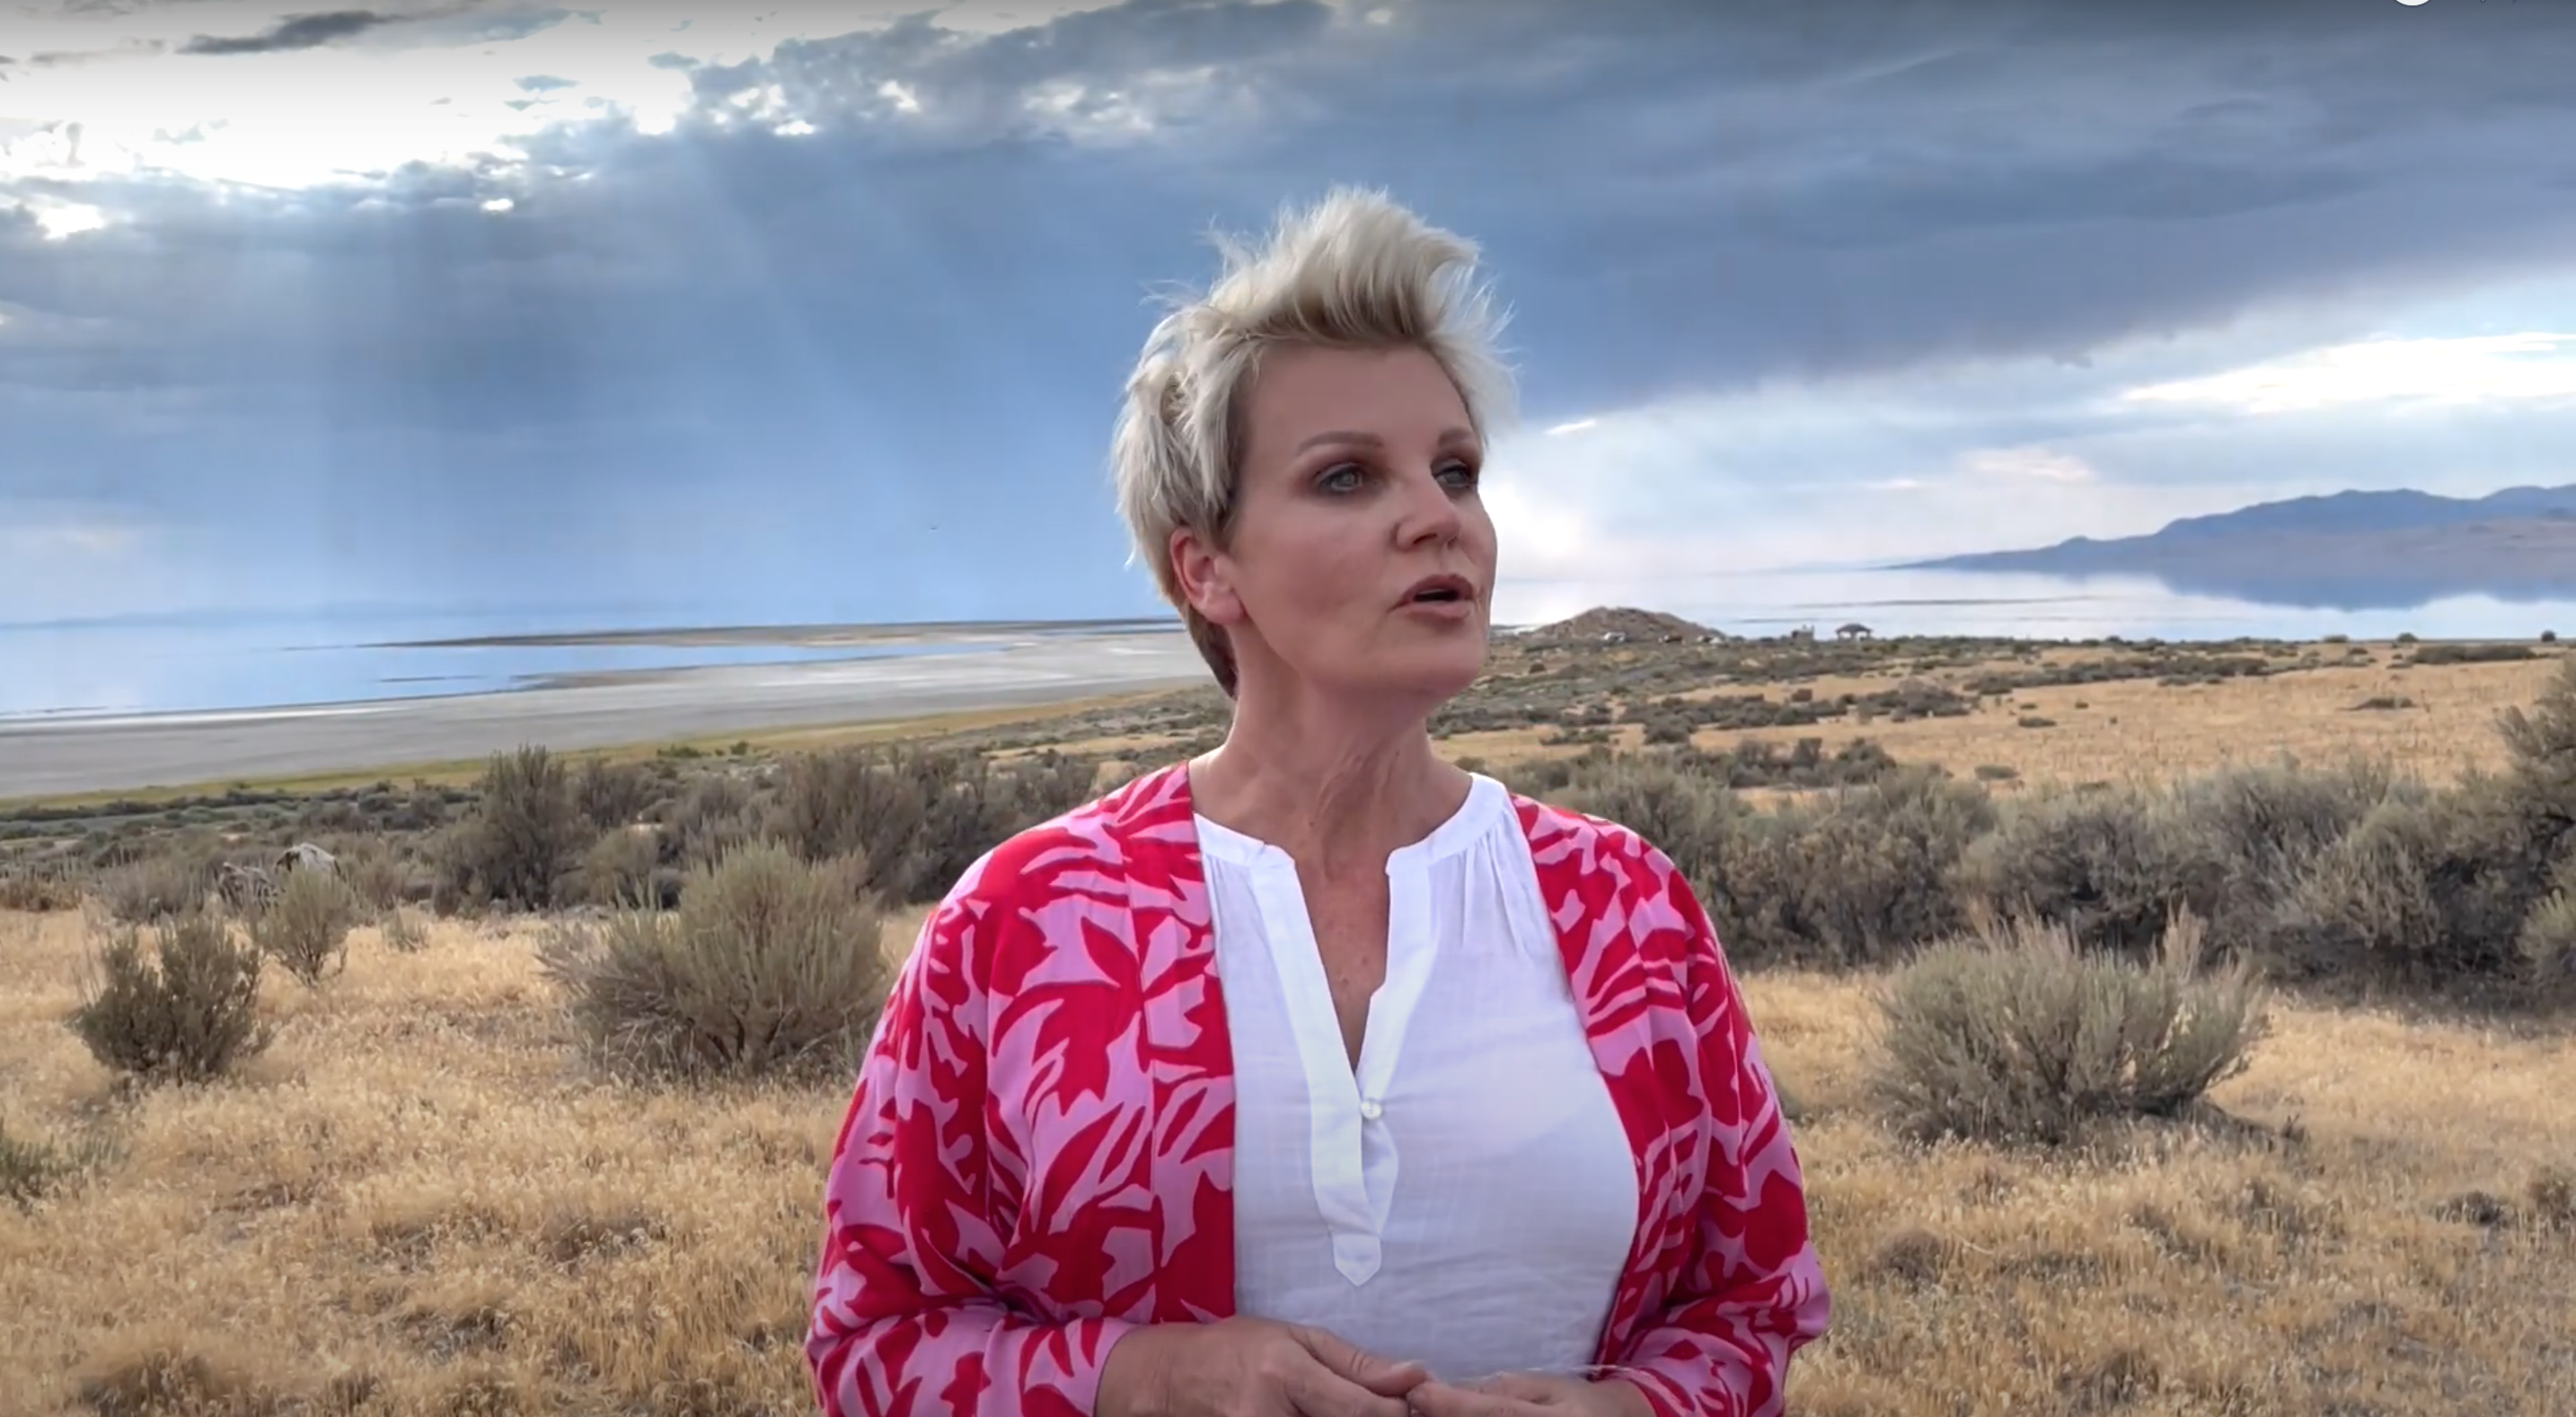 """Tonja Rose Releases """"America The Beautiful"""" Video In Honor of the 20th Anniversary of 9/11"""